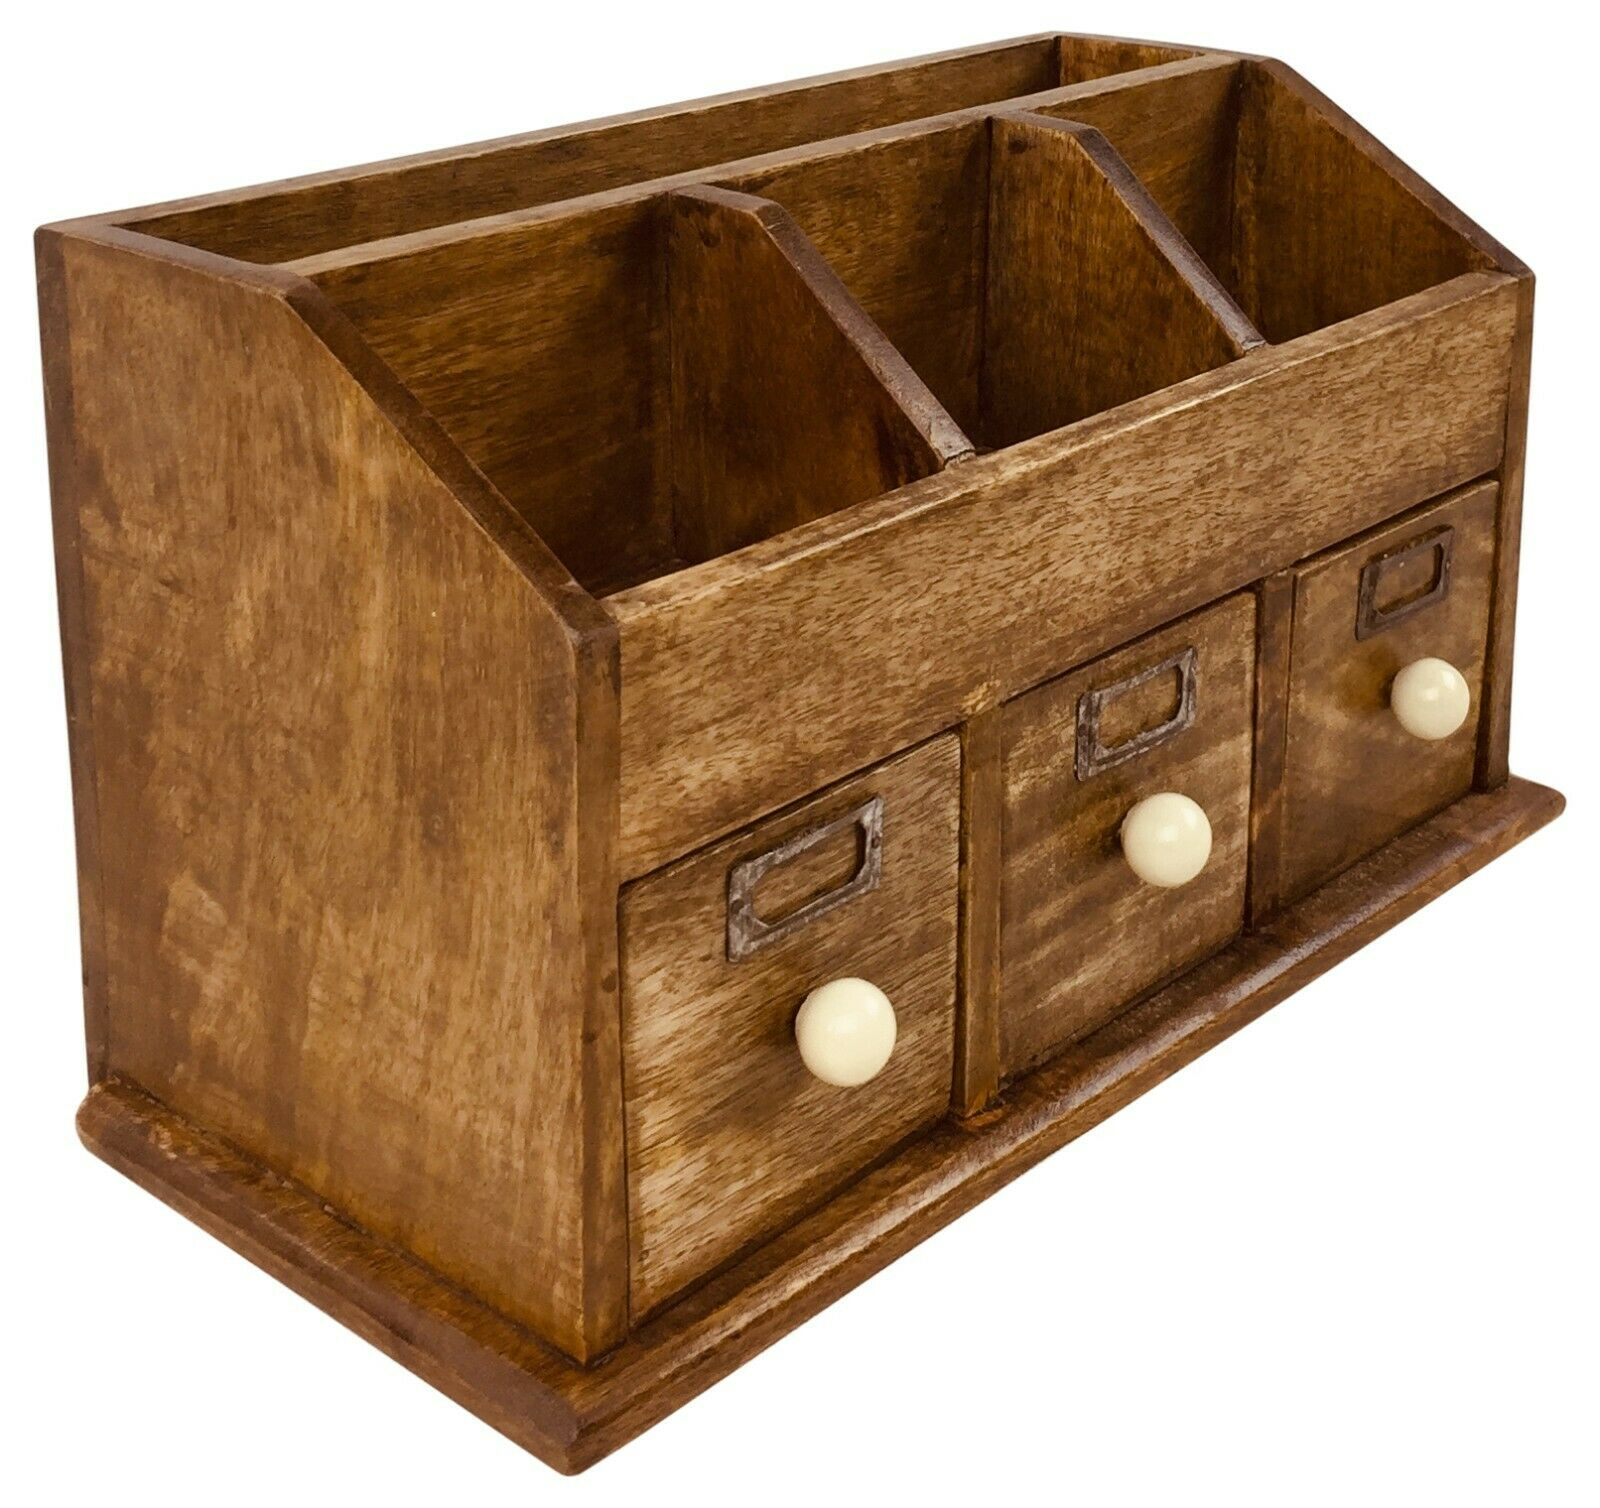 Details about Desk Top Organiser Wooden Rustic Storage With Drawers Home  Office